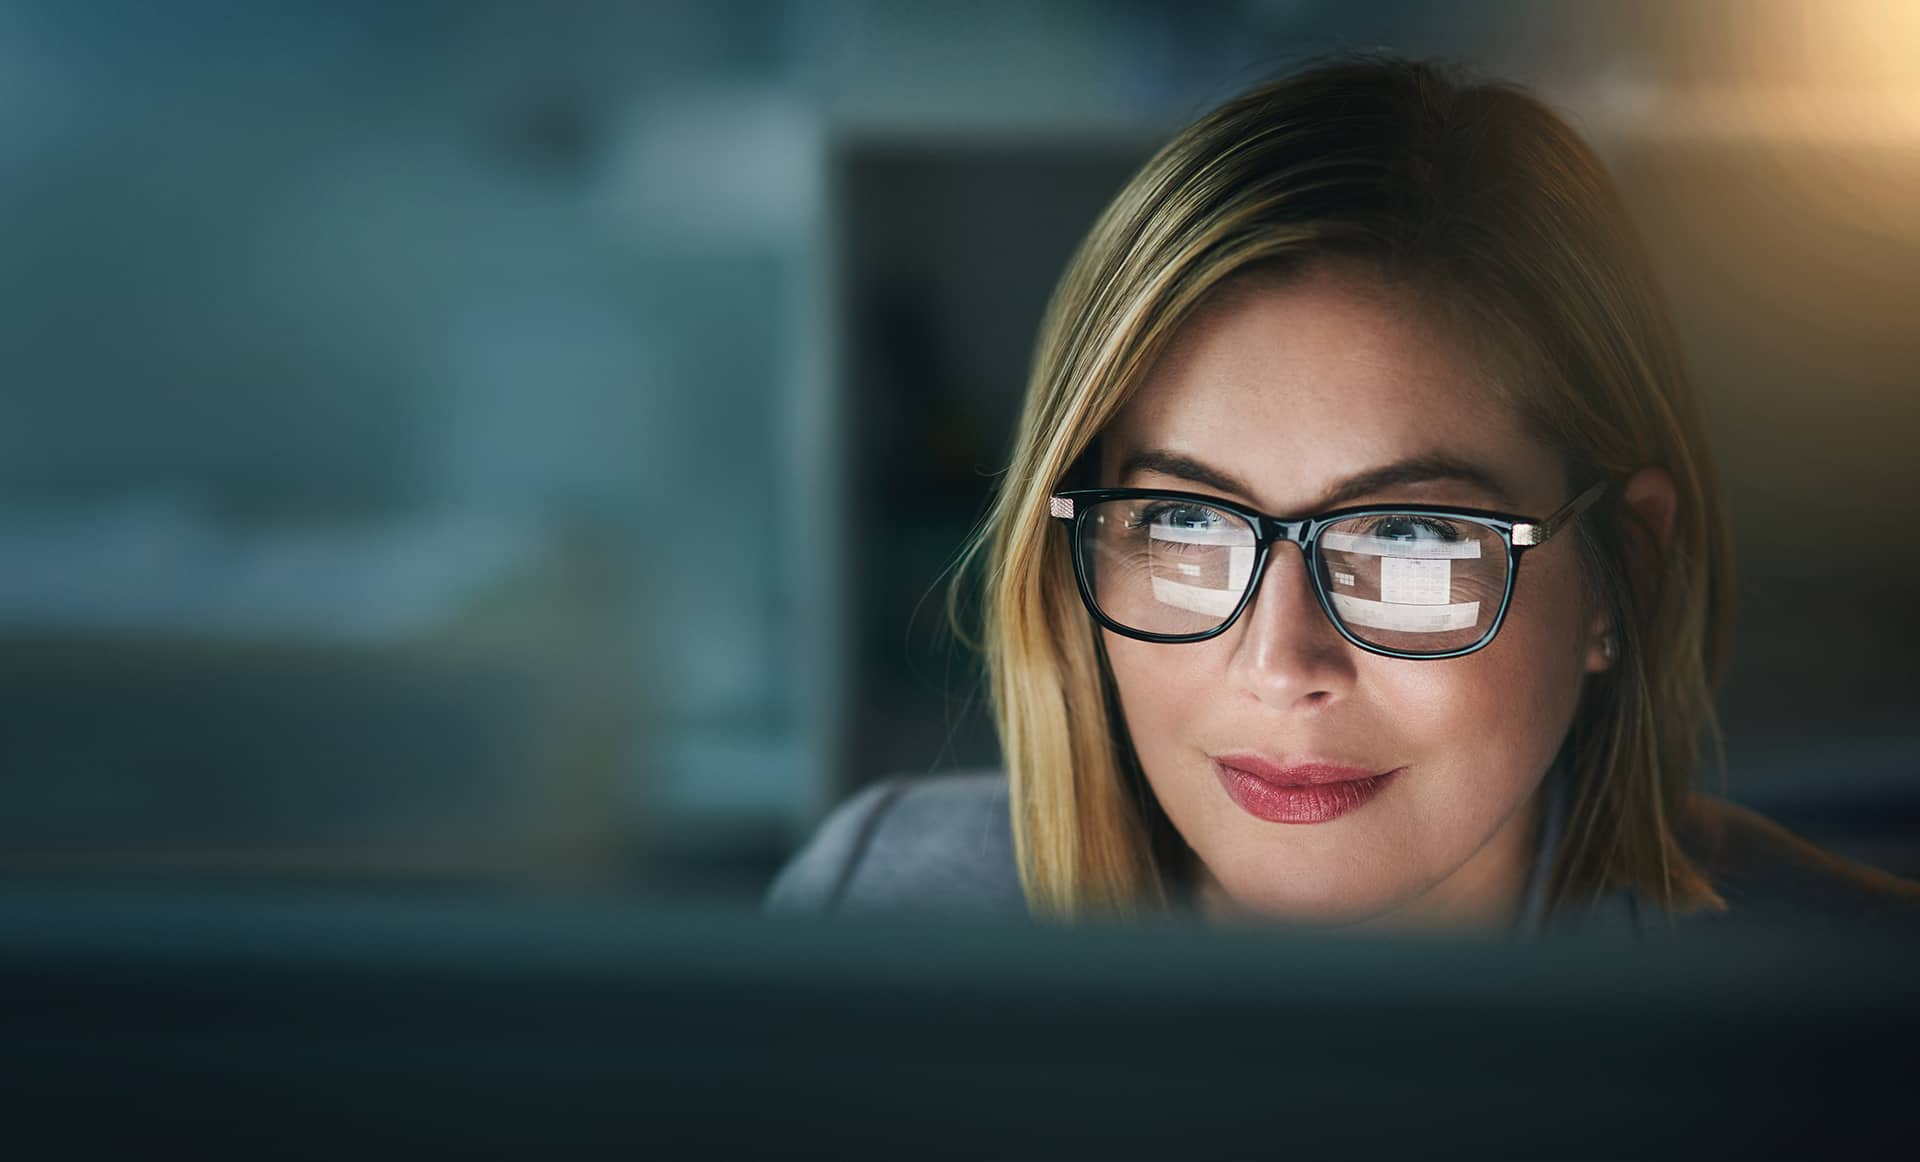 Female case worker with glasses working and looking at laptop.